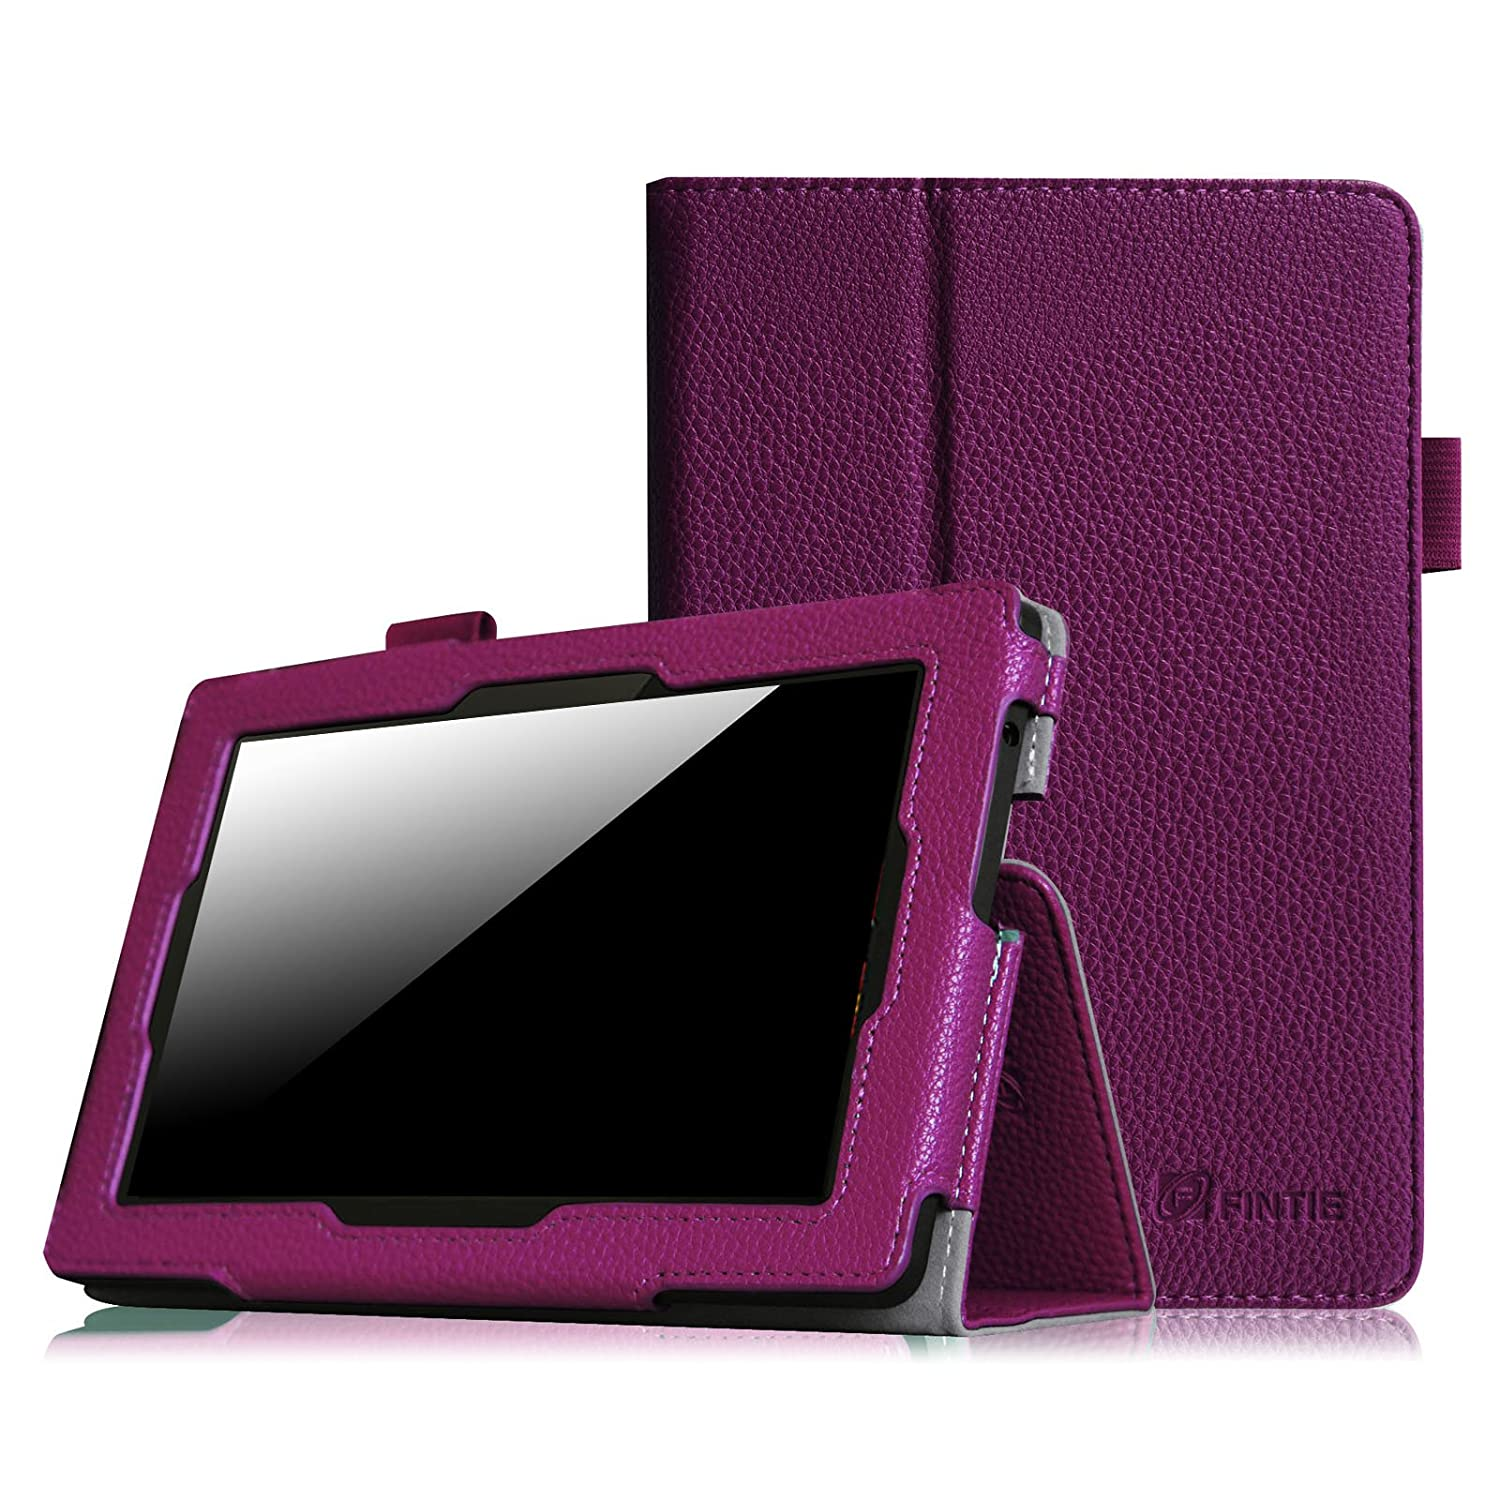 fintie folio case for kindle fire hd 7 2013 old